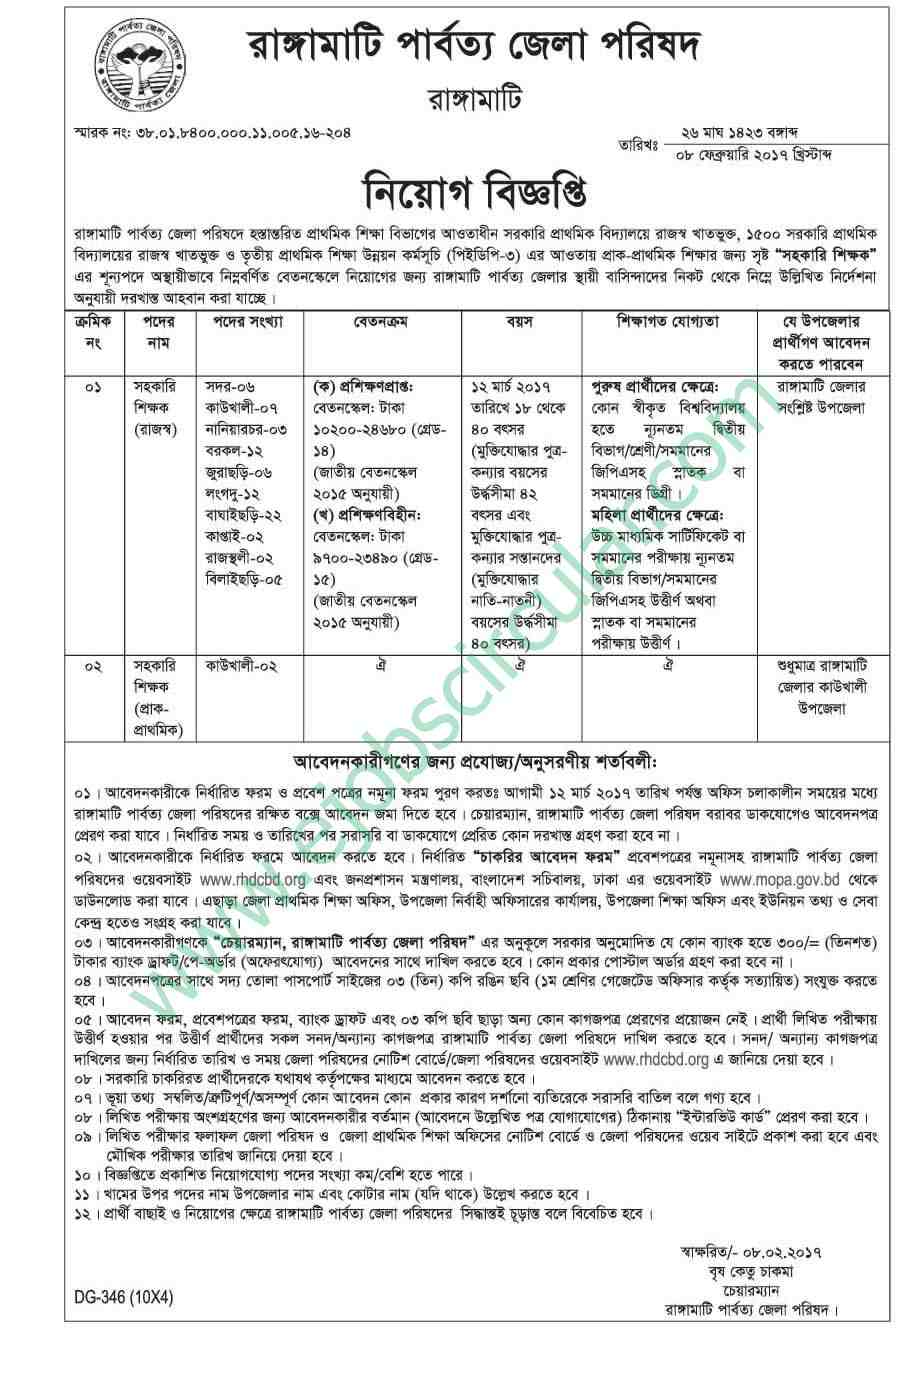 primary school teacher jobs circular published dpe gov bd primary school teacher job application form for this circular available on mopa gov bd